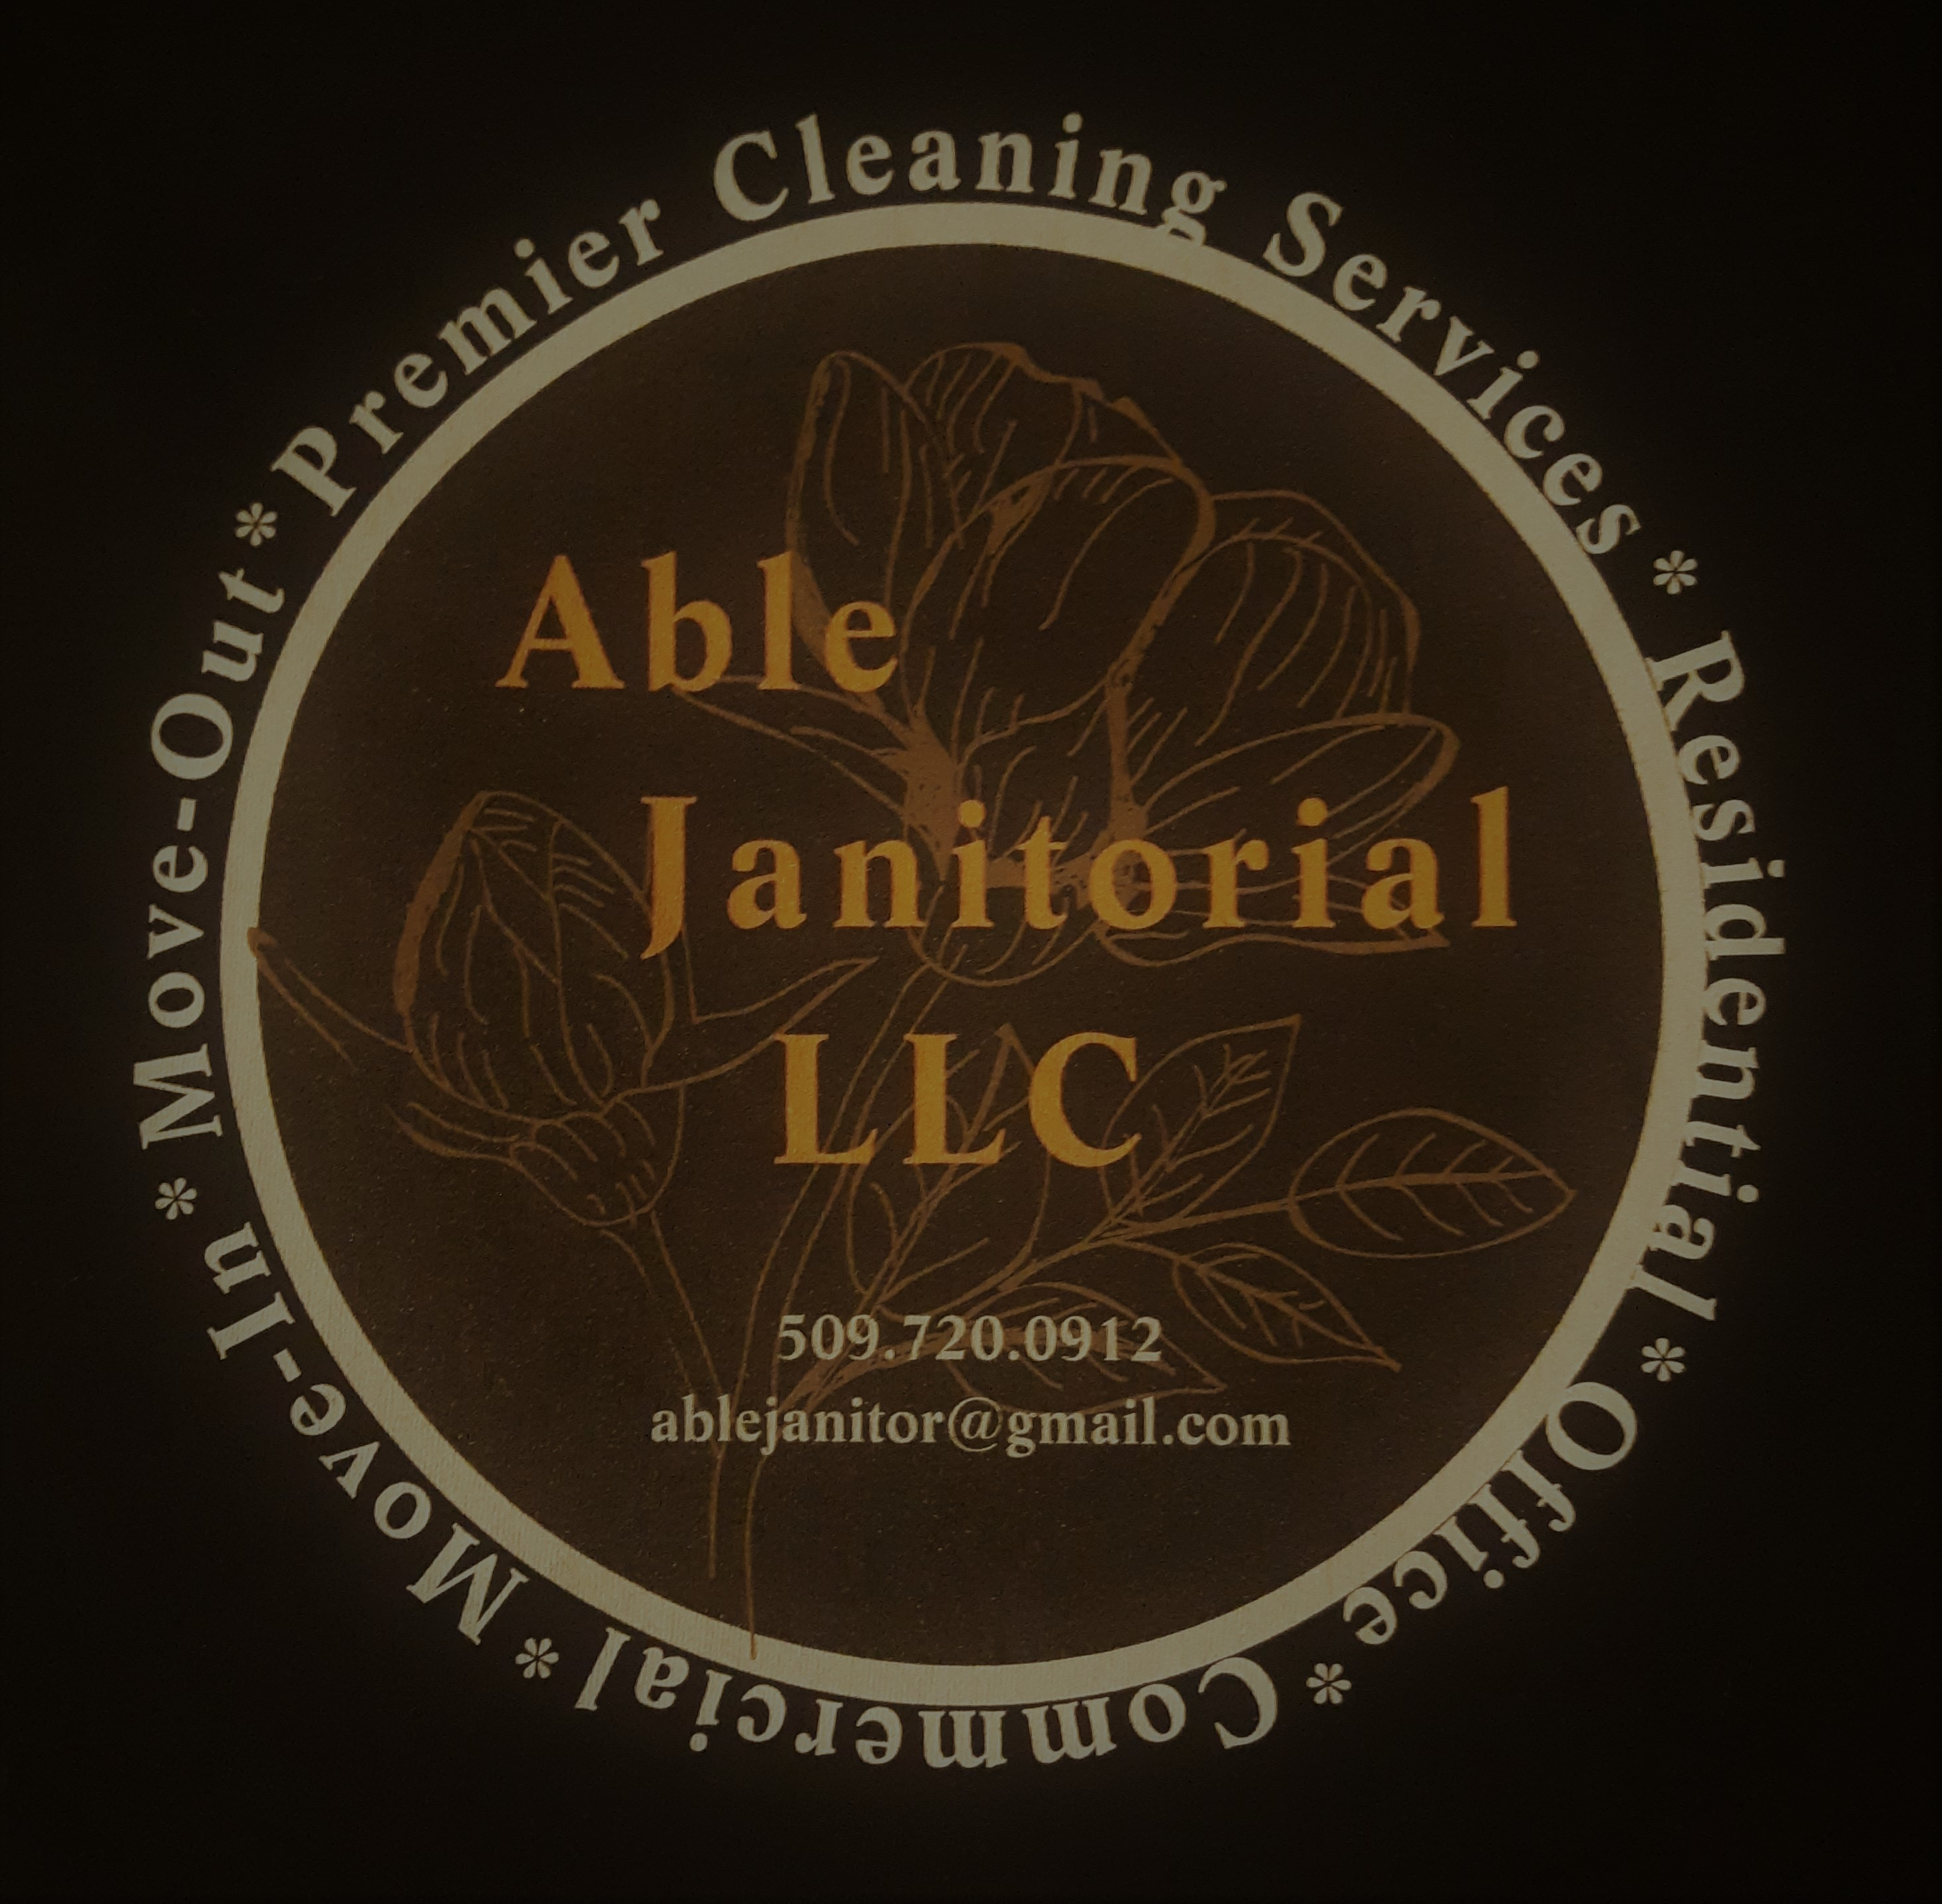 Able Janitorial LLC logo